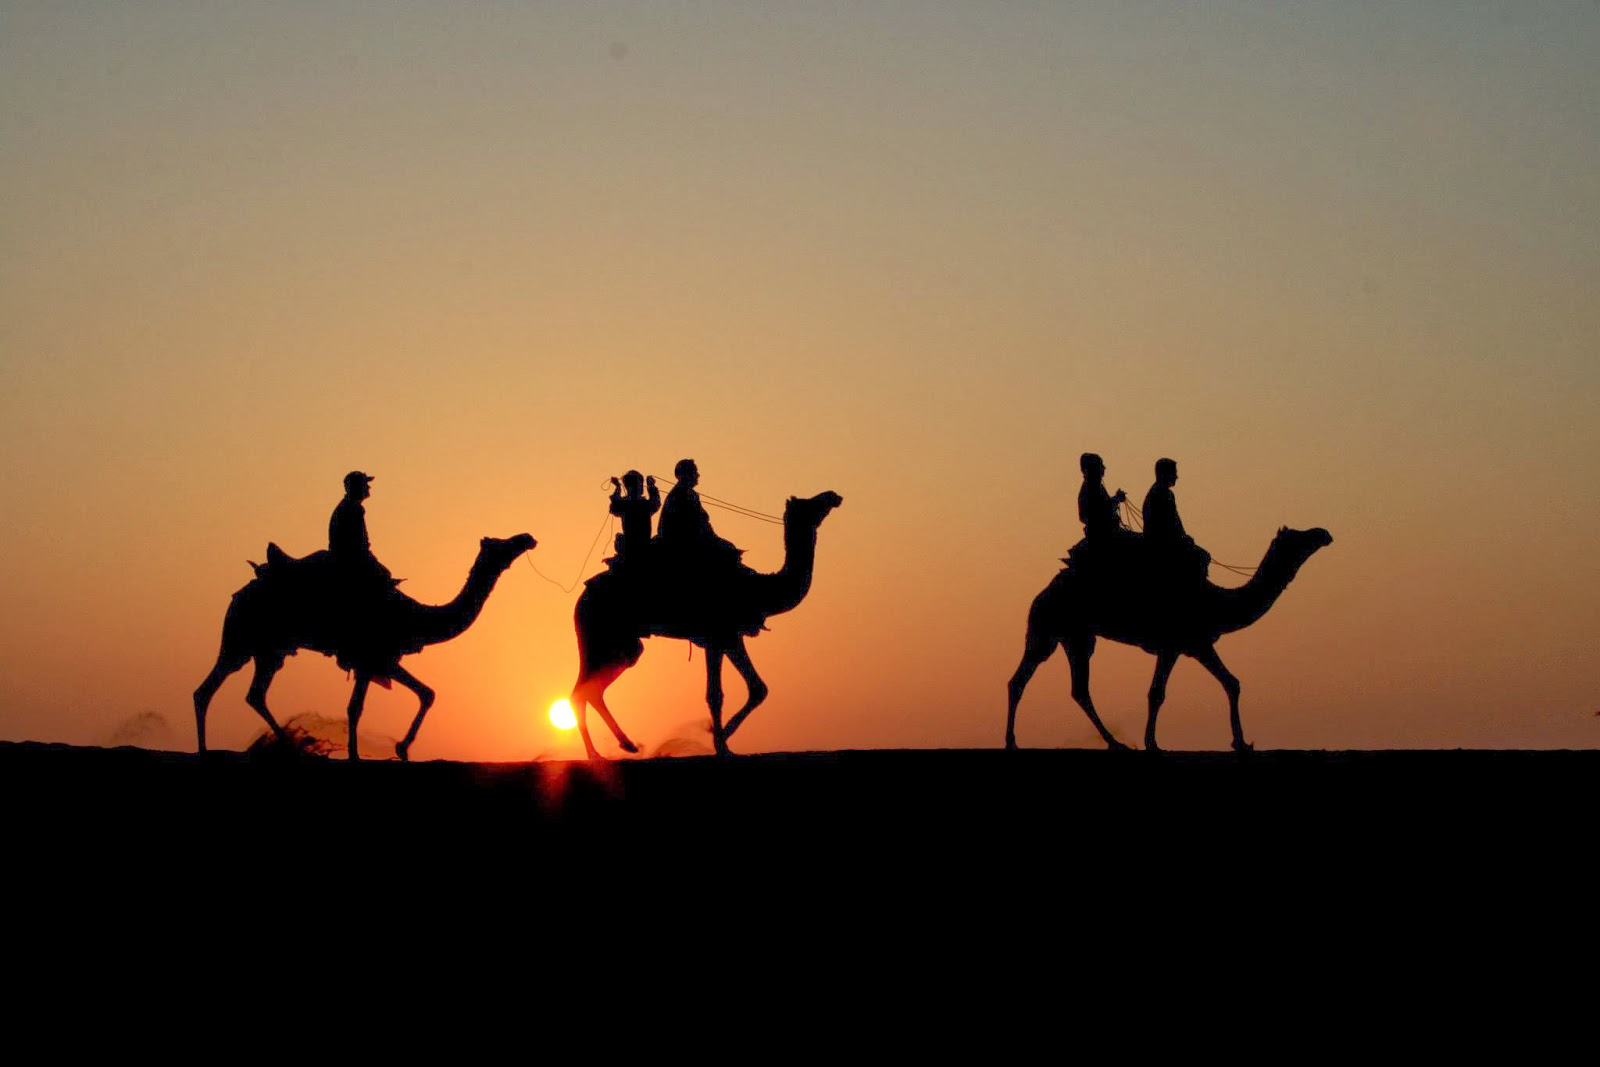 the golden city jaisalmer in rajasthan state of india a